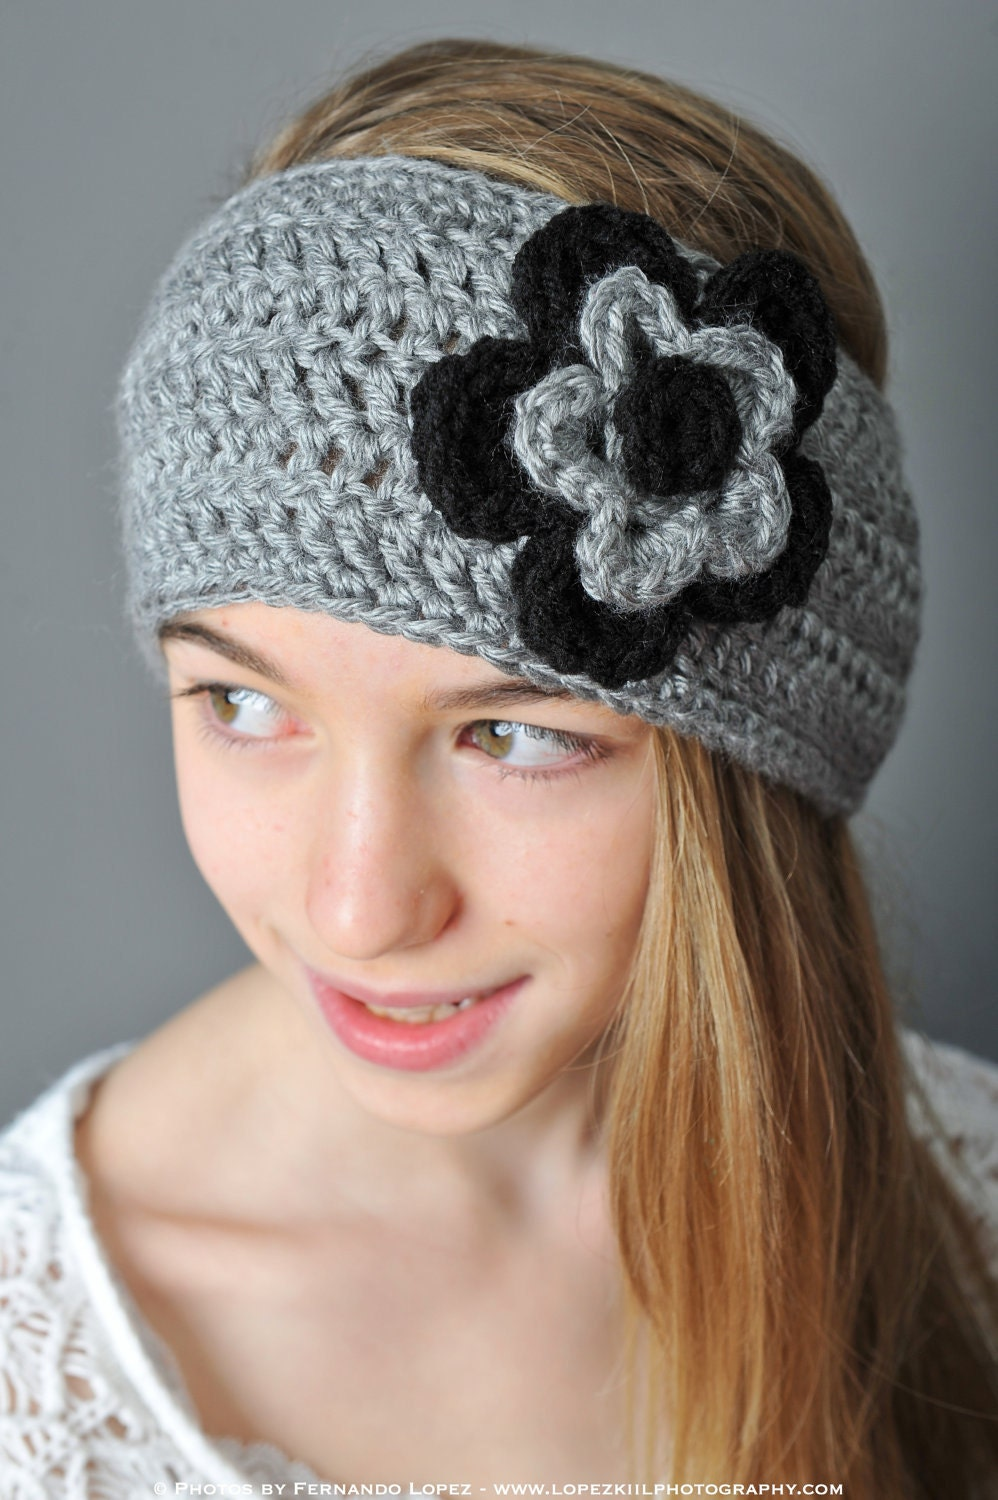 Free Crochet Pattern Headband Ear Warmer : Crochet Pattern Ear Warmer/Headband with Layered Flowers in